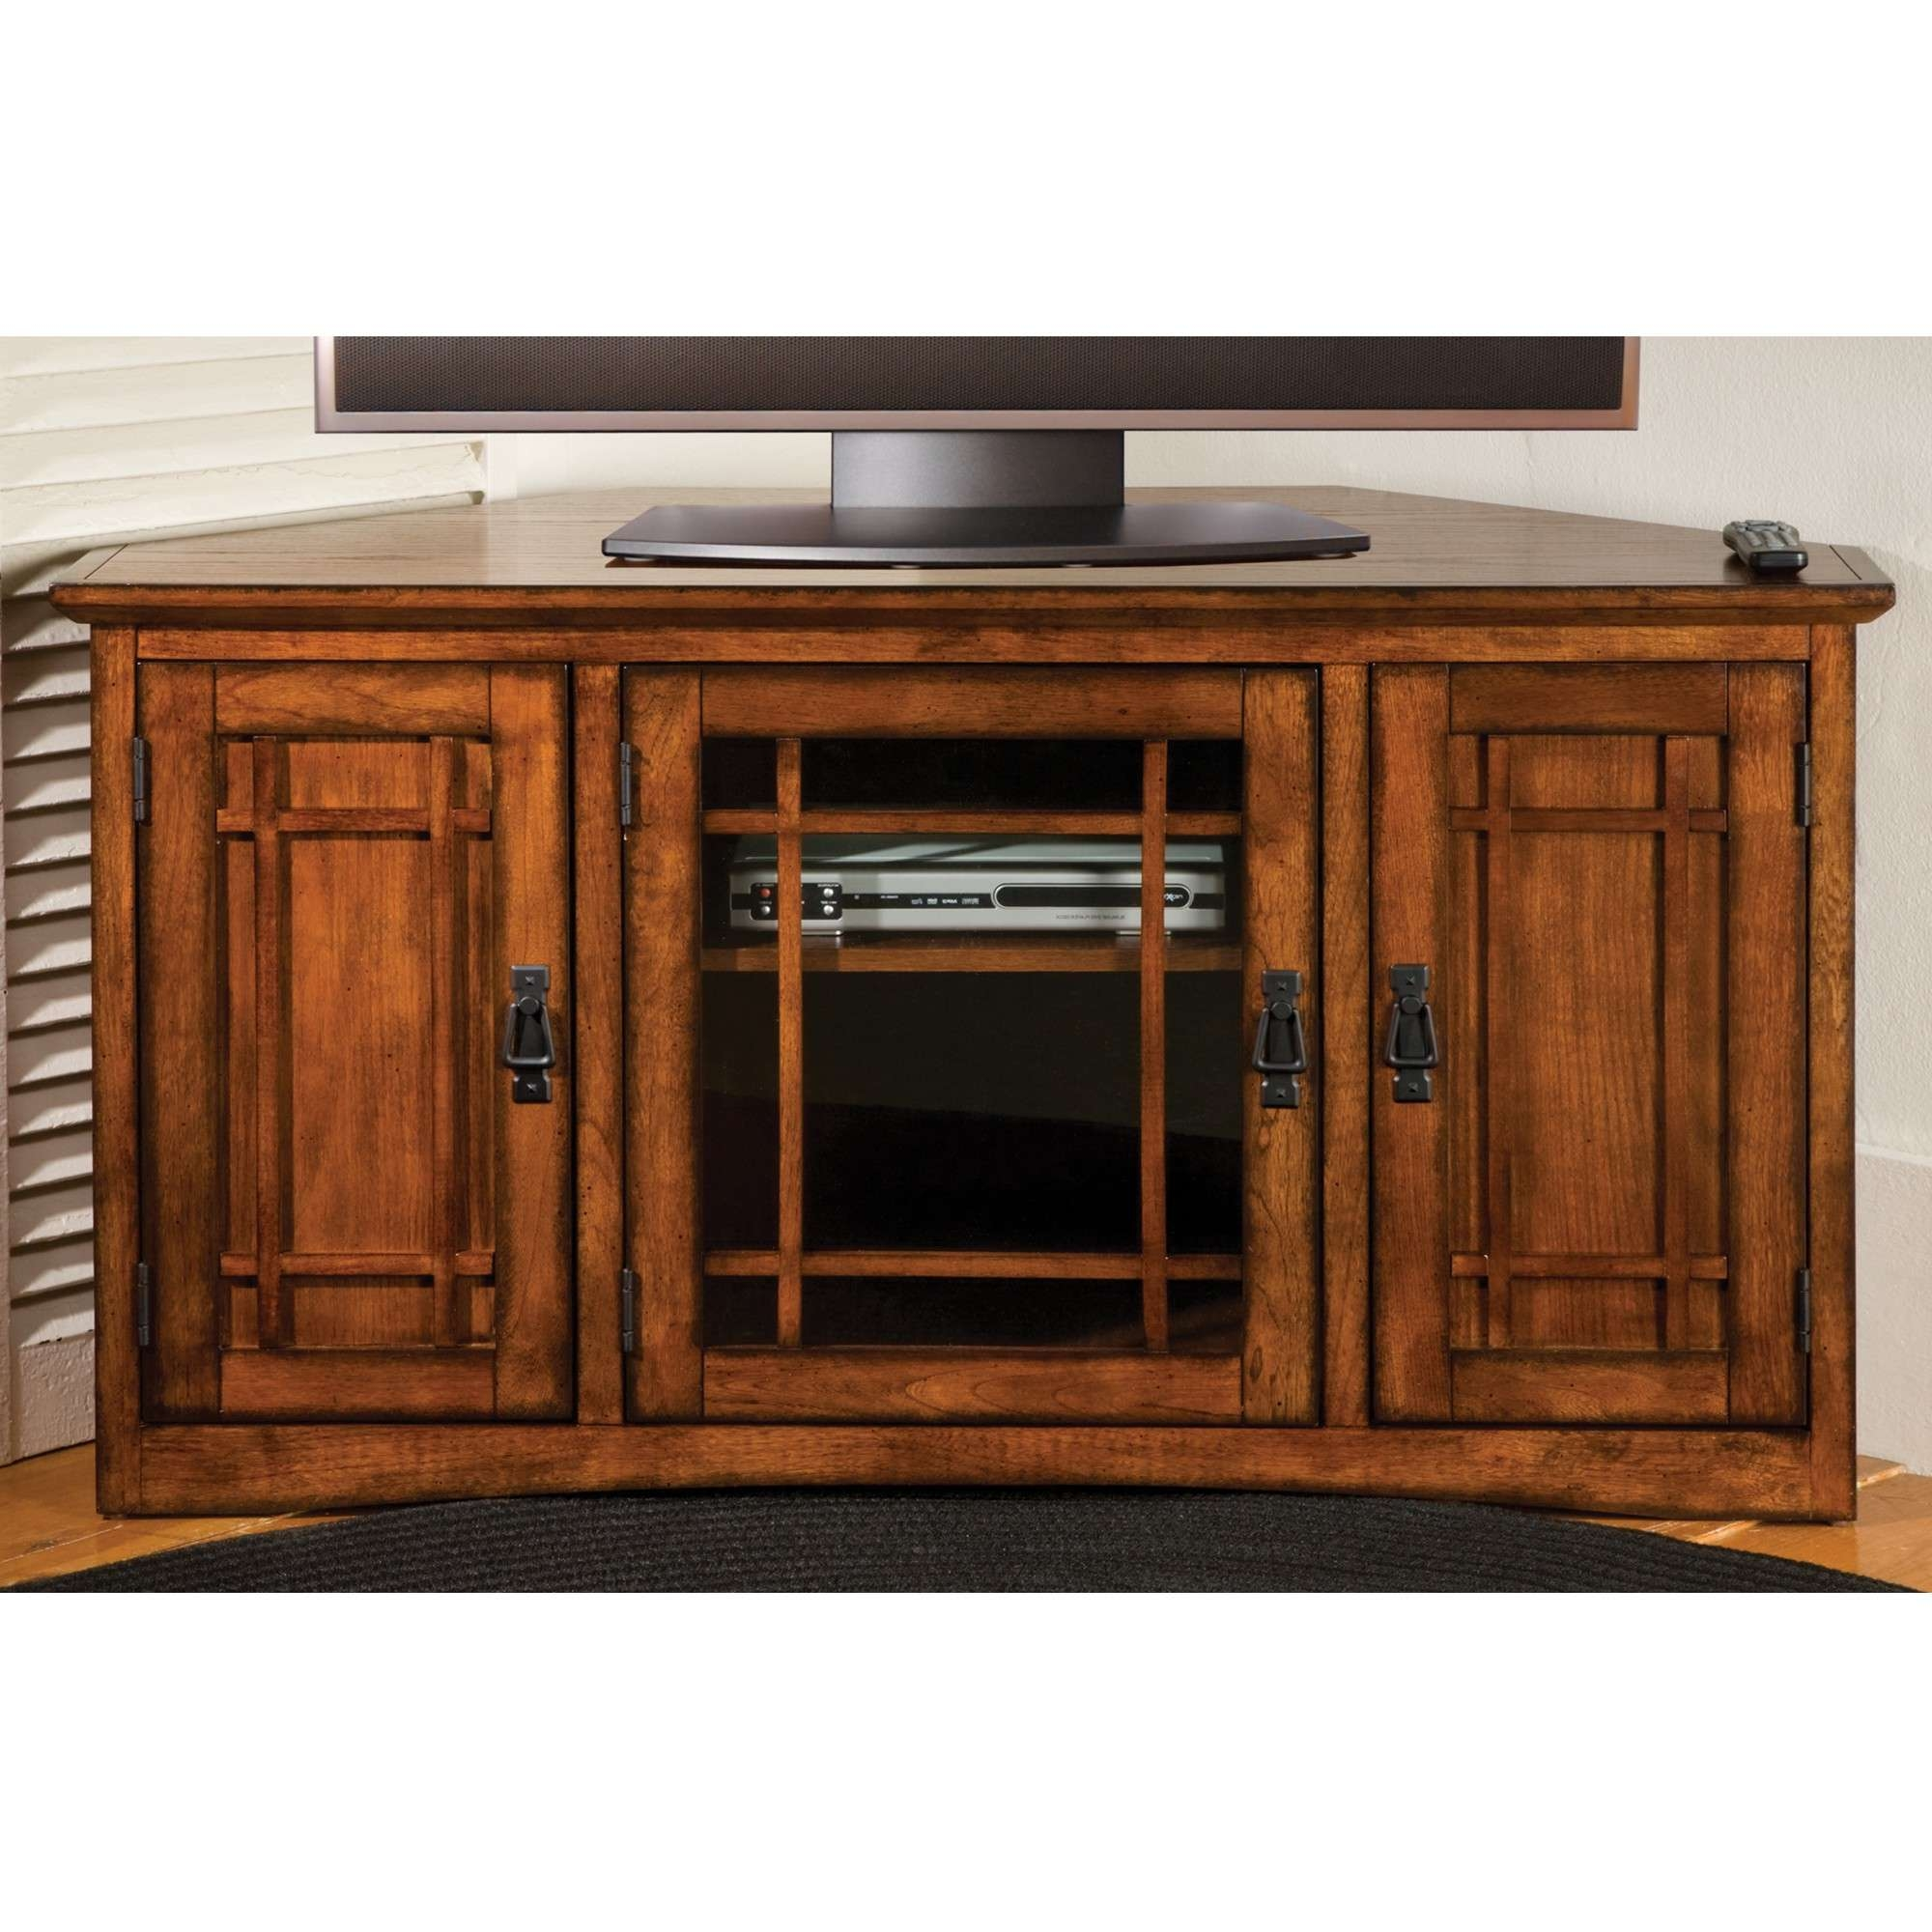 Mission Corner Tv Cabinet | Sturbridge Yankee Workshop Throughout Oak Tv Cabinets With Doors (View 7 of 20)